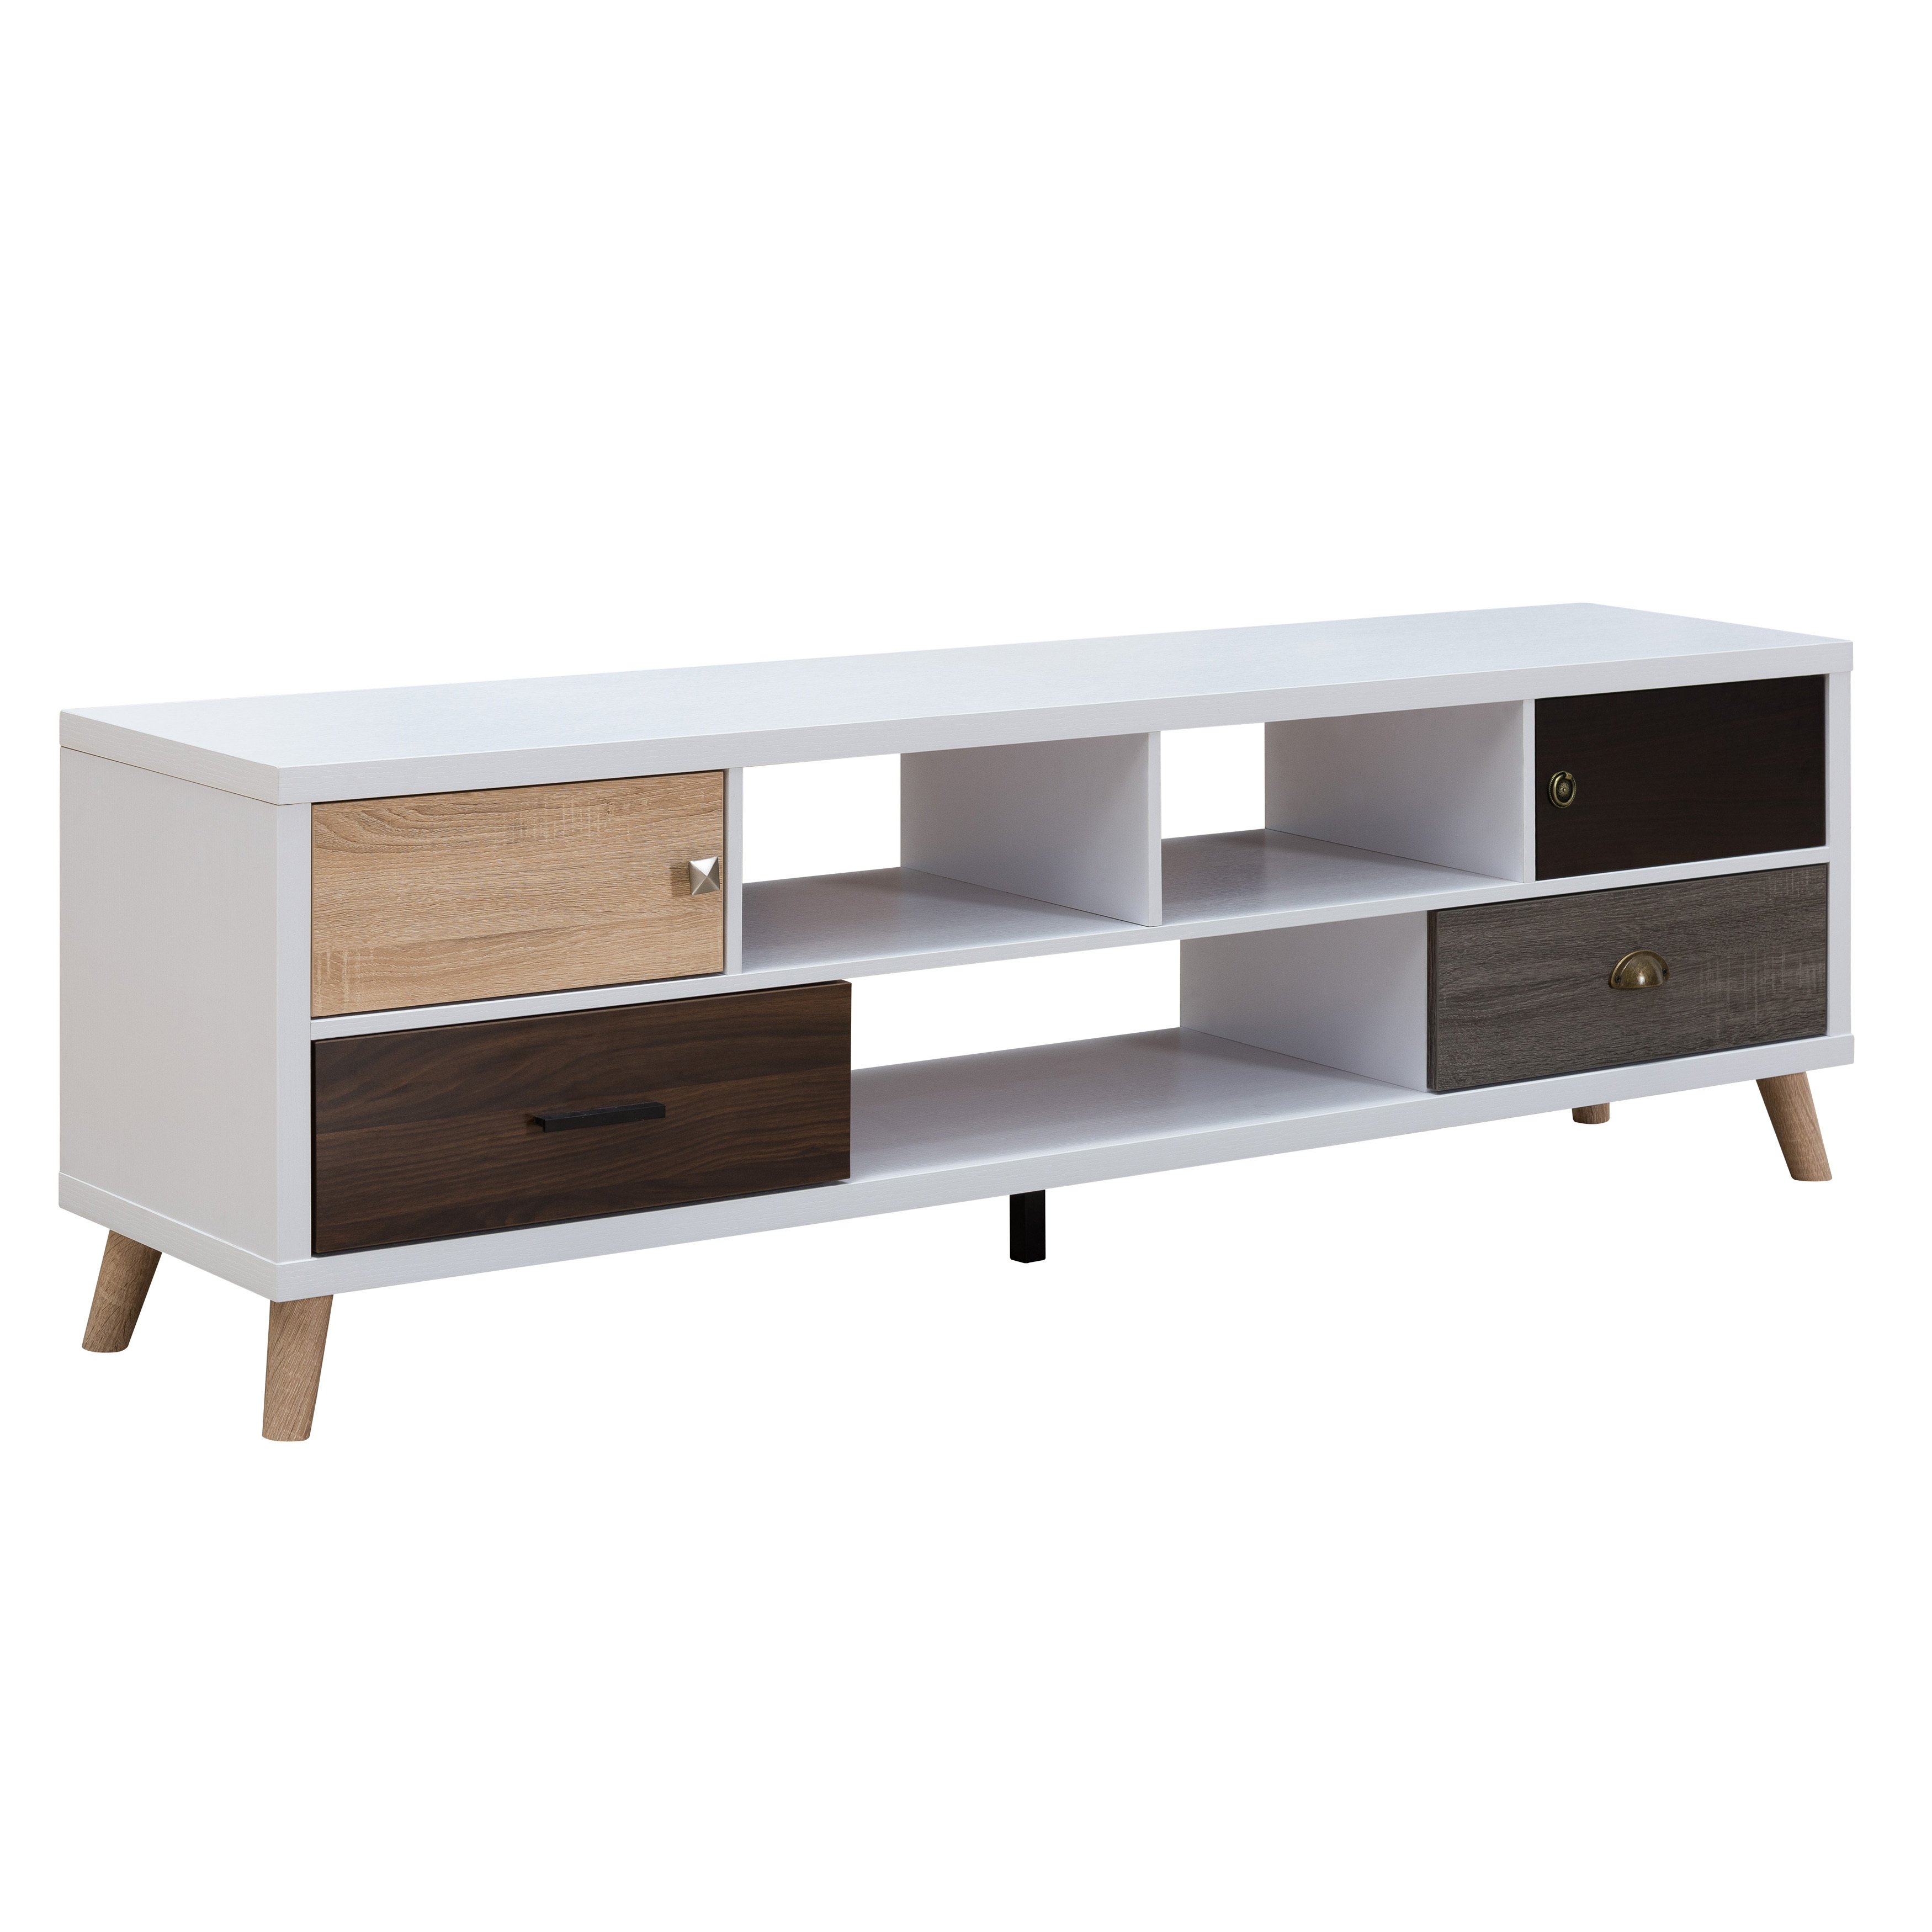 Shop Furniture Of America Kristen Mid-Century Modern Multicolored for Casey Grey 54 Inch Tv Stands (Image 17 of 30)